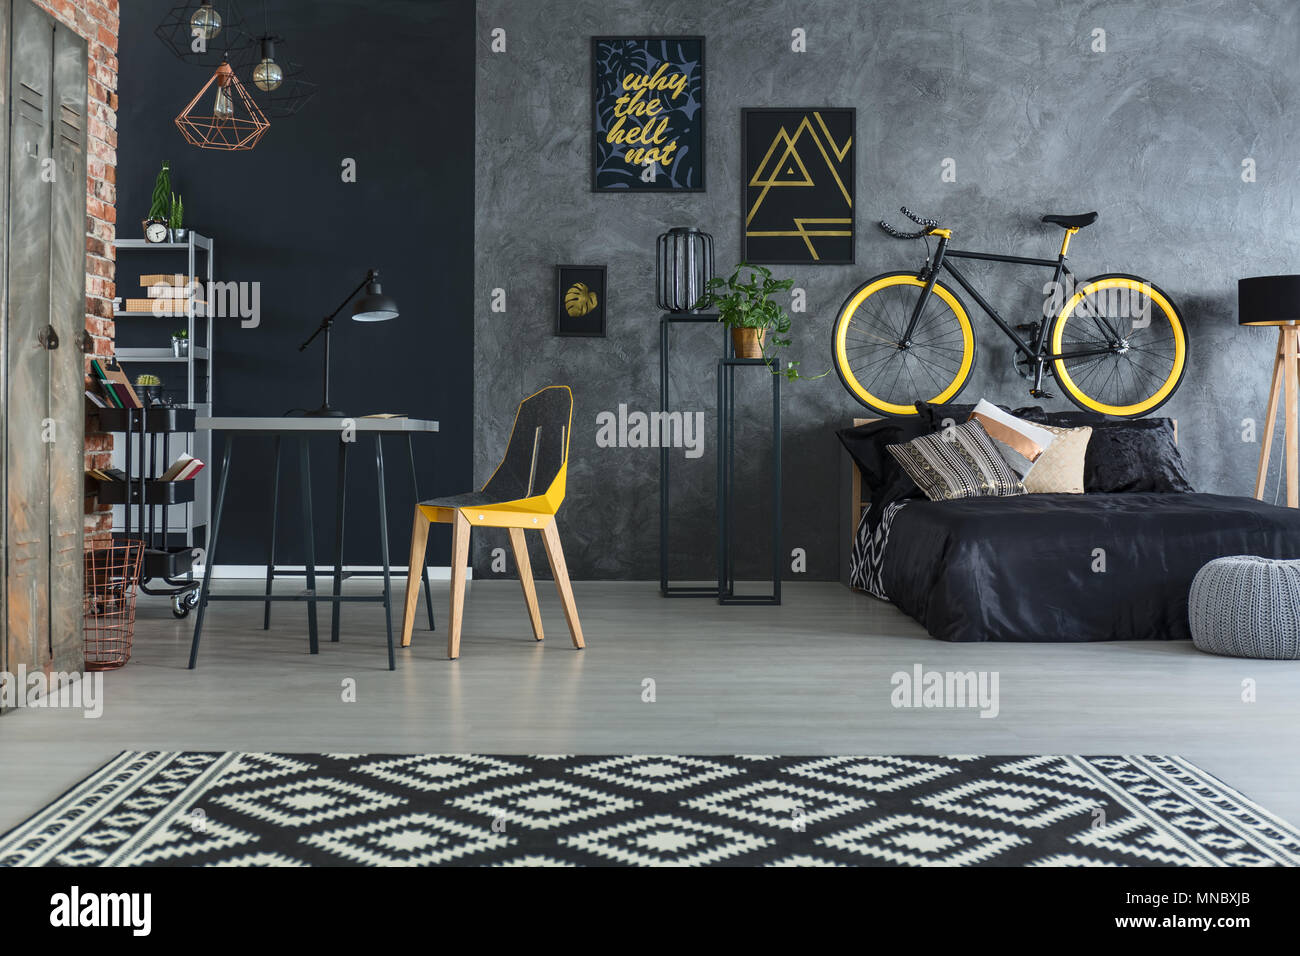 Hipster bedroom with bed, desk, chair and brick wall - Stock Image